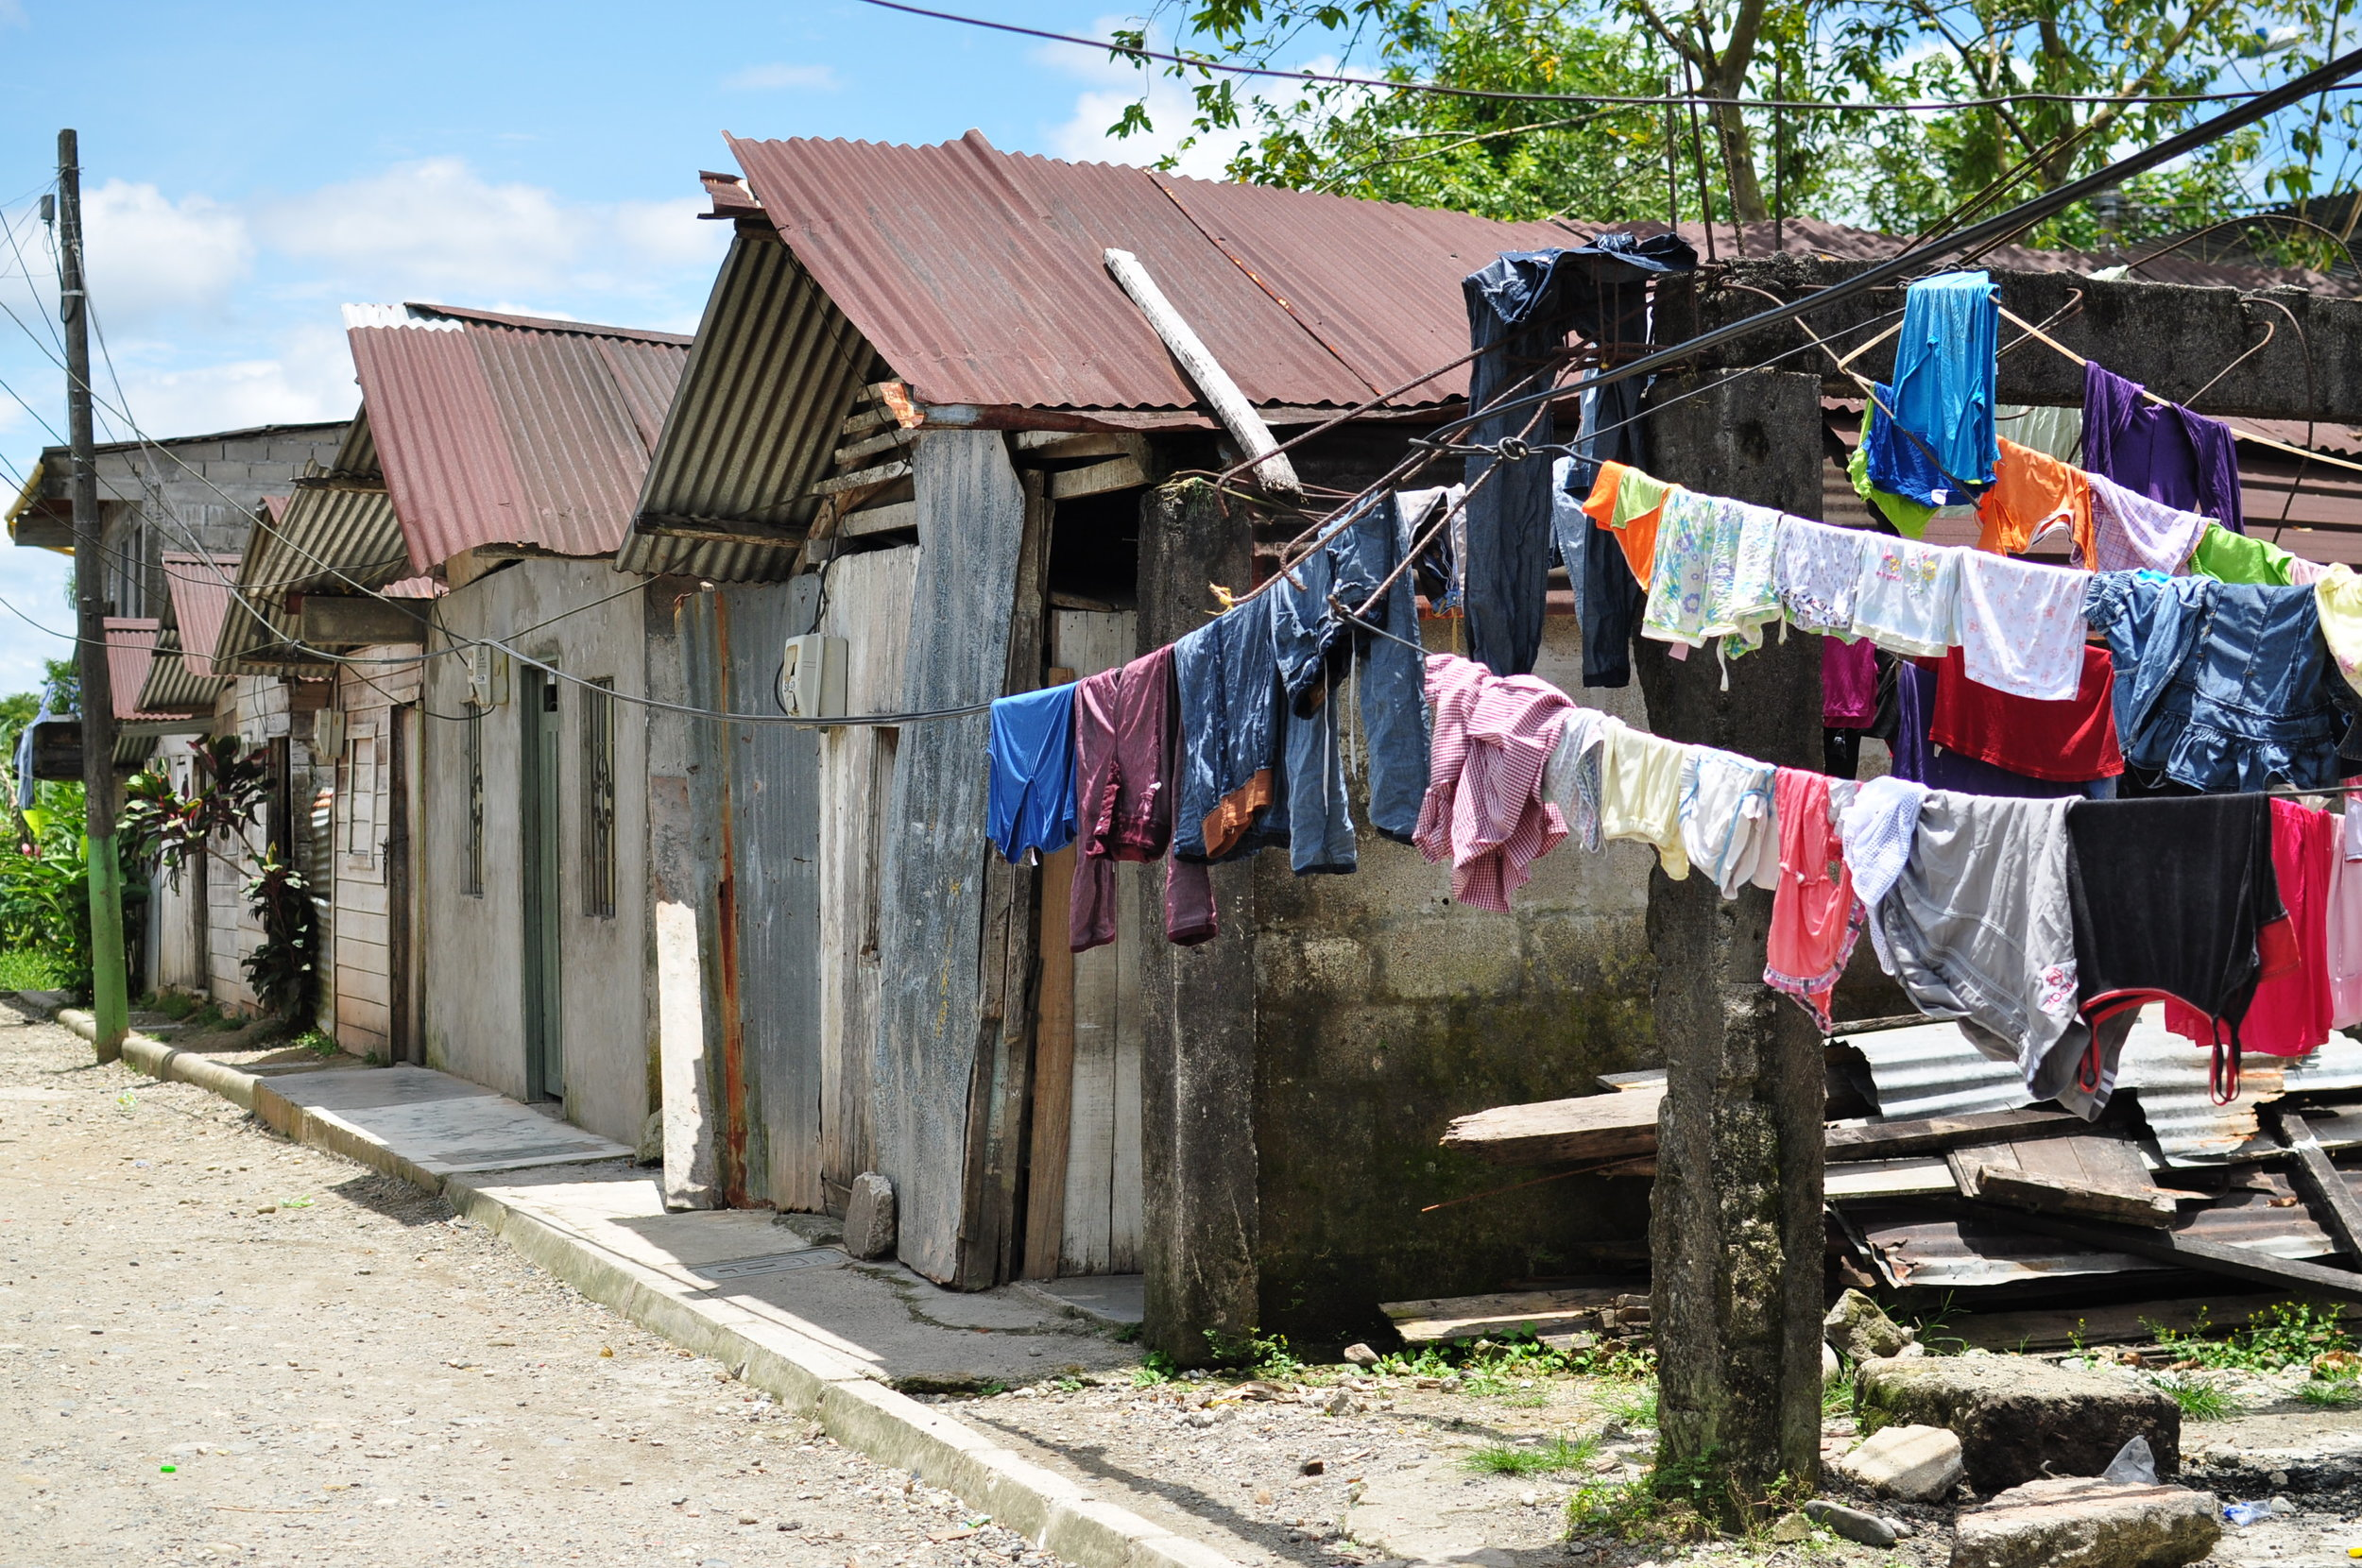 Some cities have neighborhoods that are entirely composed of displaced people, such as this one in the department of Chocó. The dwellers live in confinement, and are continuously subject to violence. Some of the women in this neighborhood have sent their sons away out of fear that they will succumb to the violence.